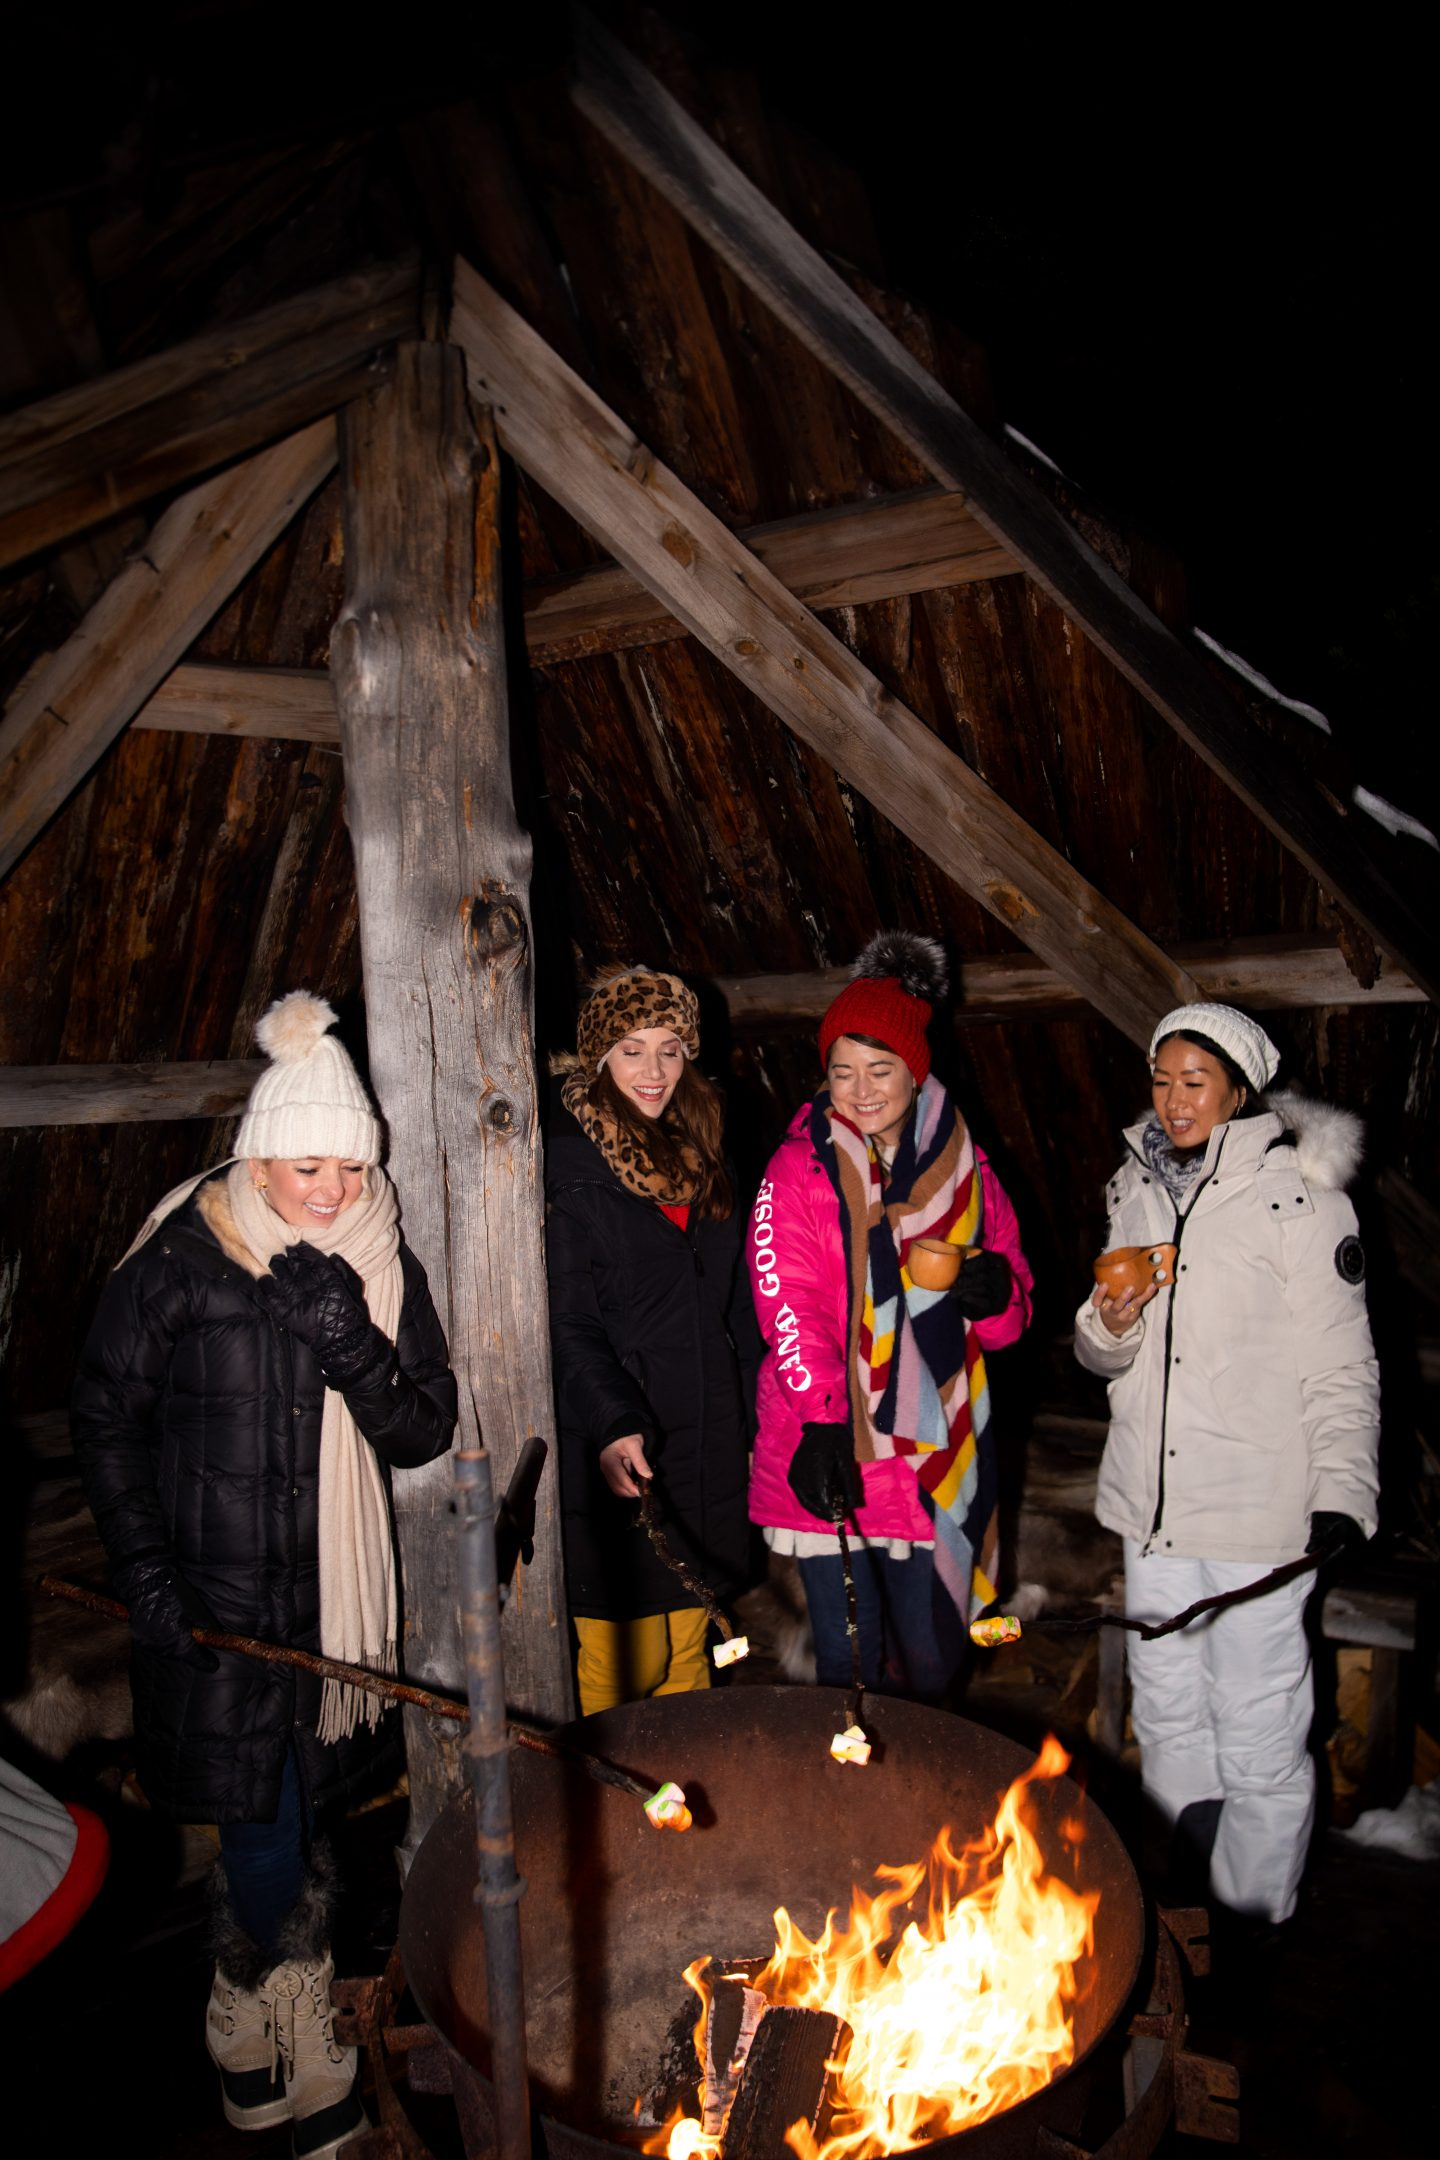 Travel guide and travel diary to Lapland, Finland and Rovaniemi, Finland with Santa's Secret Forest